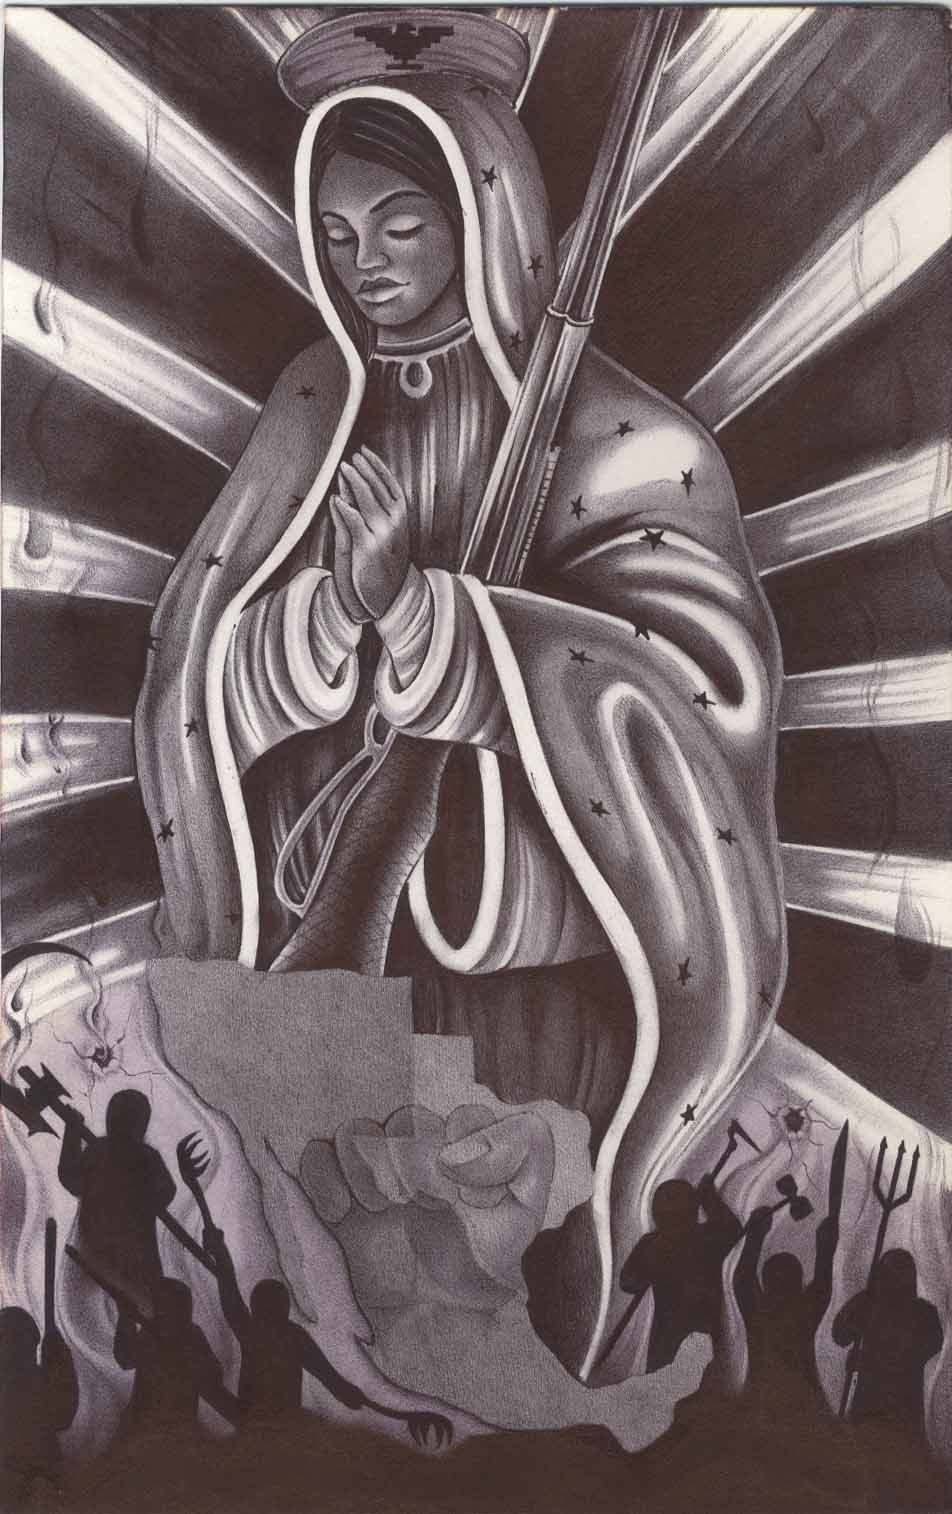 Militant-Madonna-art-by-Xinachtli-2020, Chicano political prisoner Xinachtli calls on all freedom fighters, liberation-movement organizations to unite to build the National United Front Prison Lives Matter movement, Behind Enemy Lines